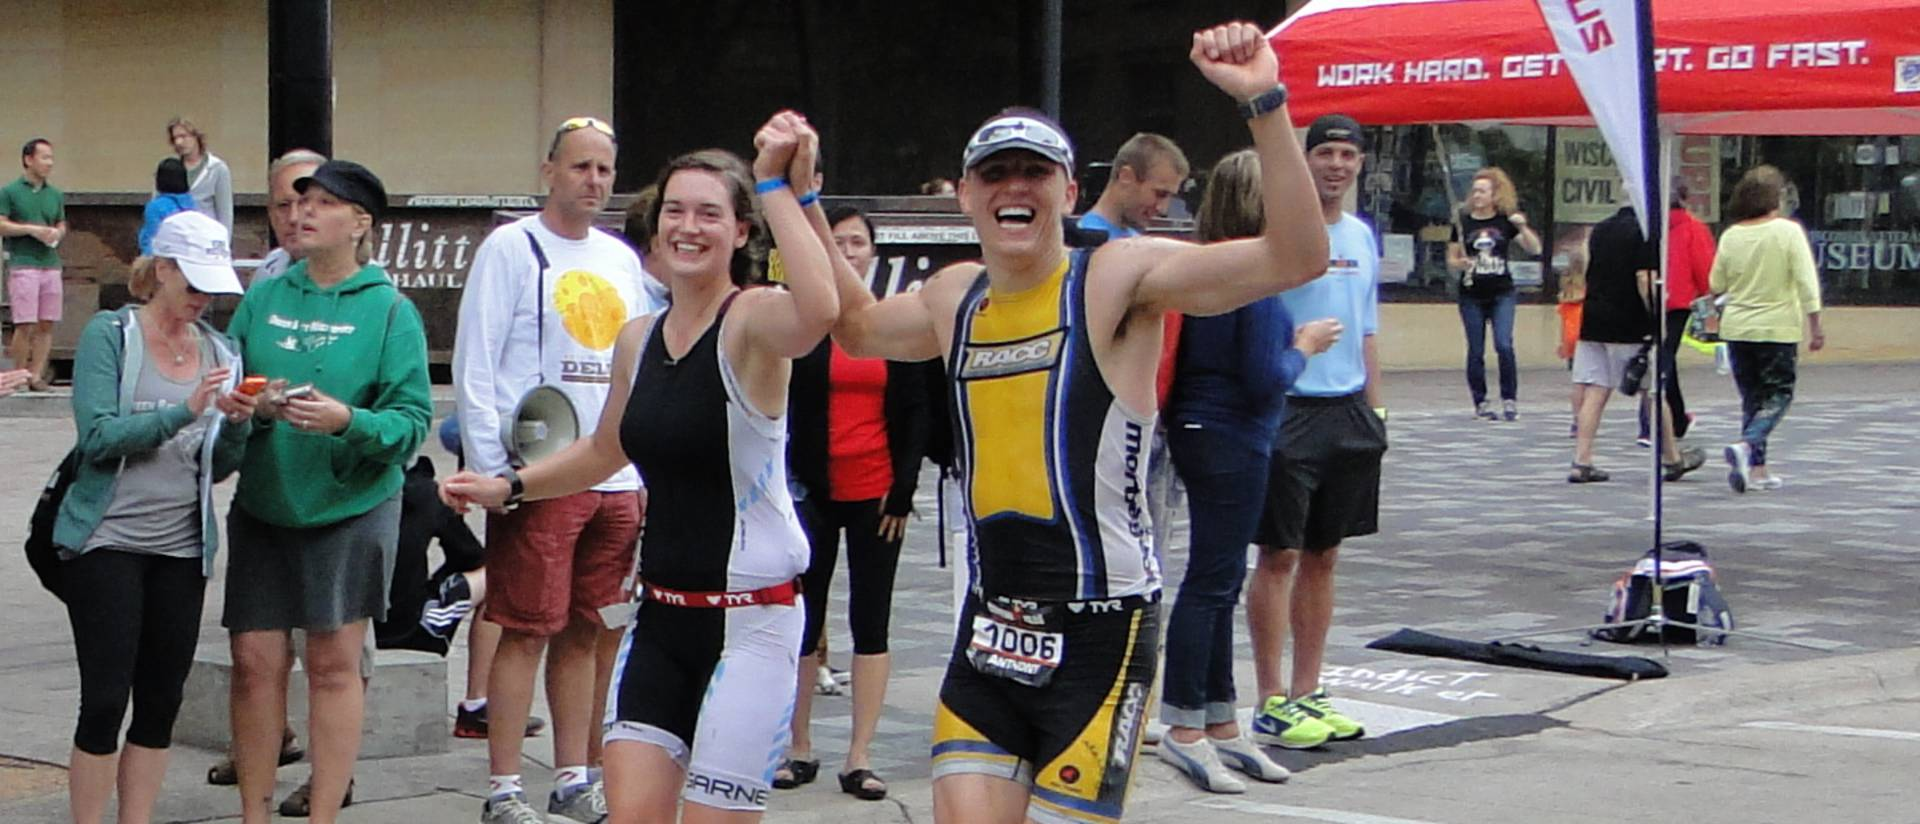 Anthony Jagielo and Deana Petersen competed in Wisconsin's Ironman competition in September in Madison.